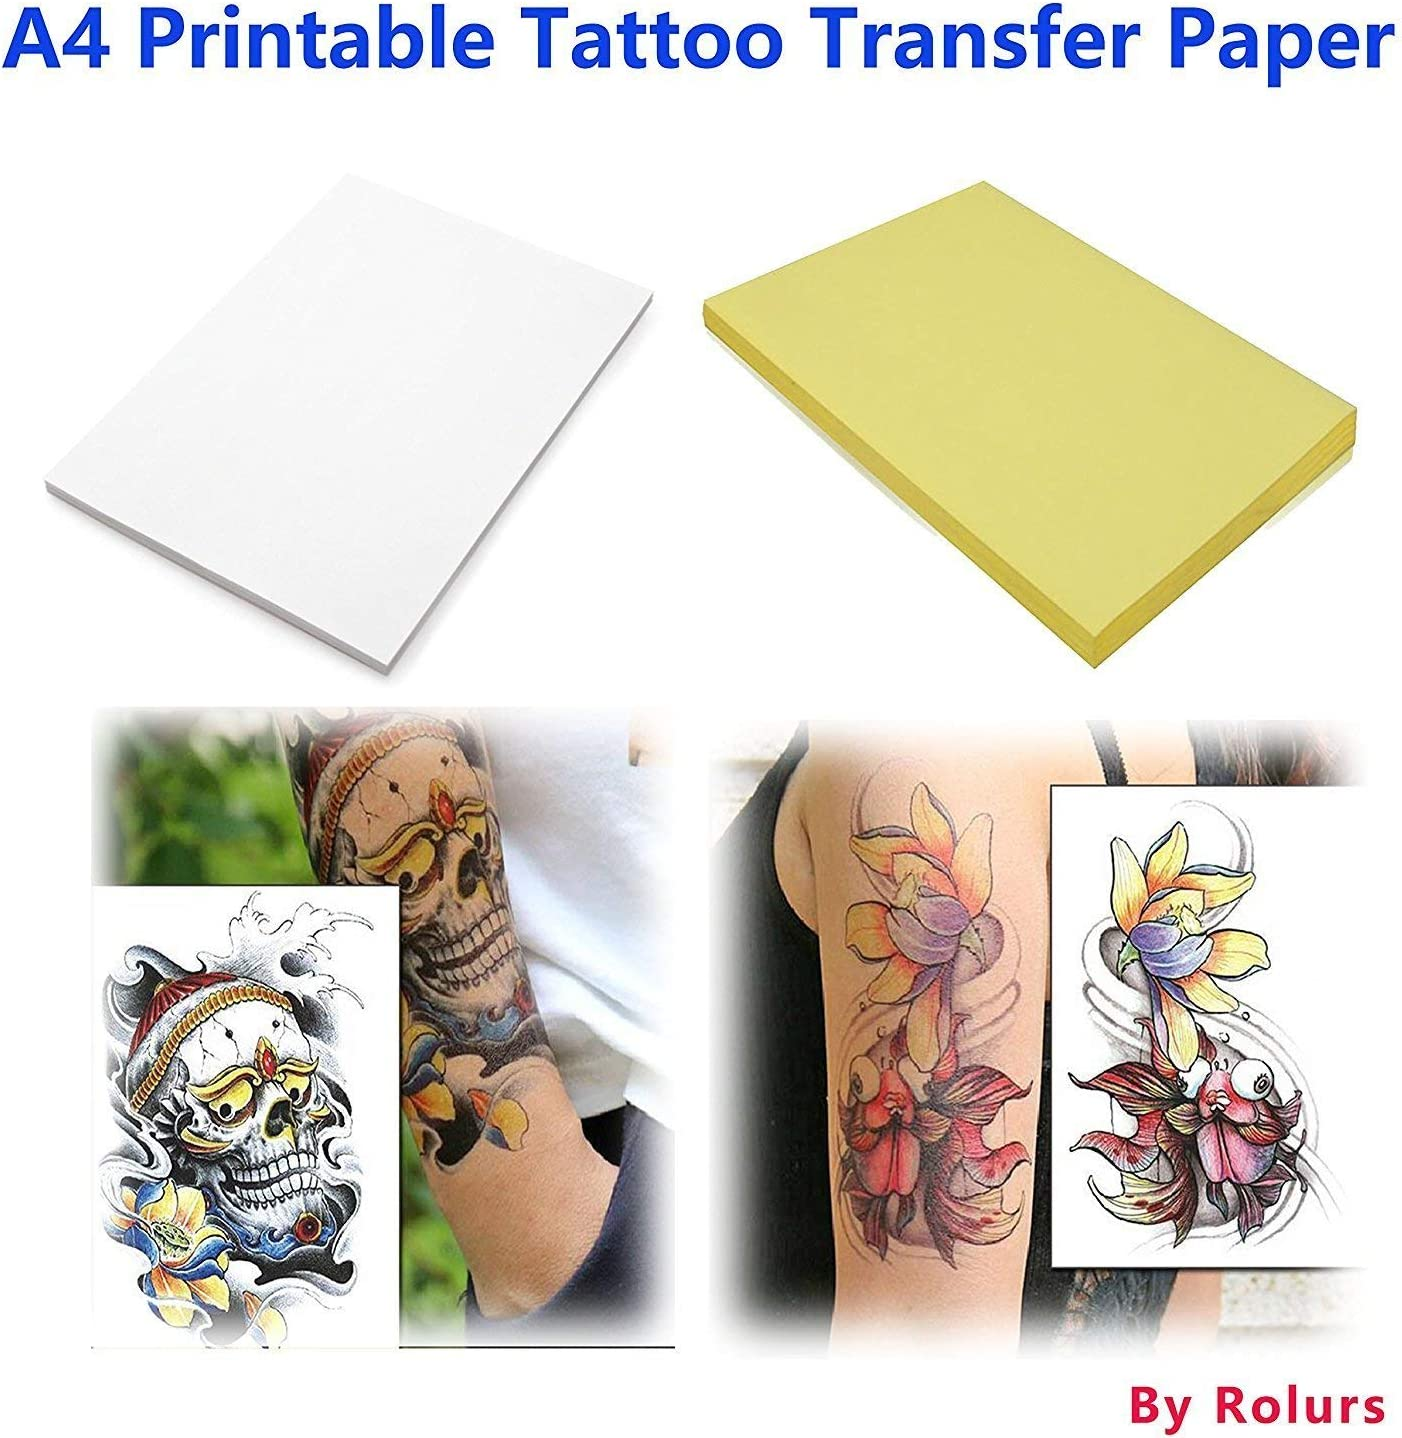 35 Sheets Stencil Paper Copy Paper Tracing Paper with 4 Layers Qulable Approx Tattoo Transfer Paper A4 Size